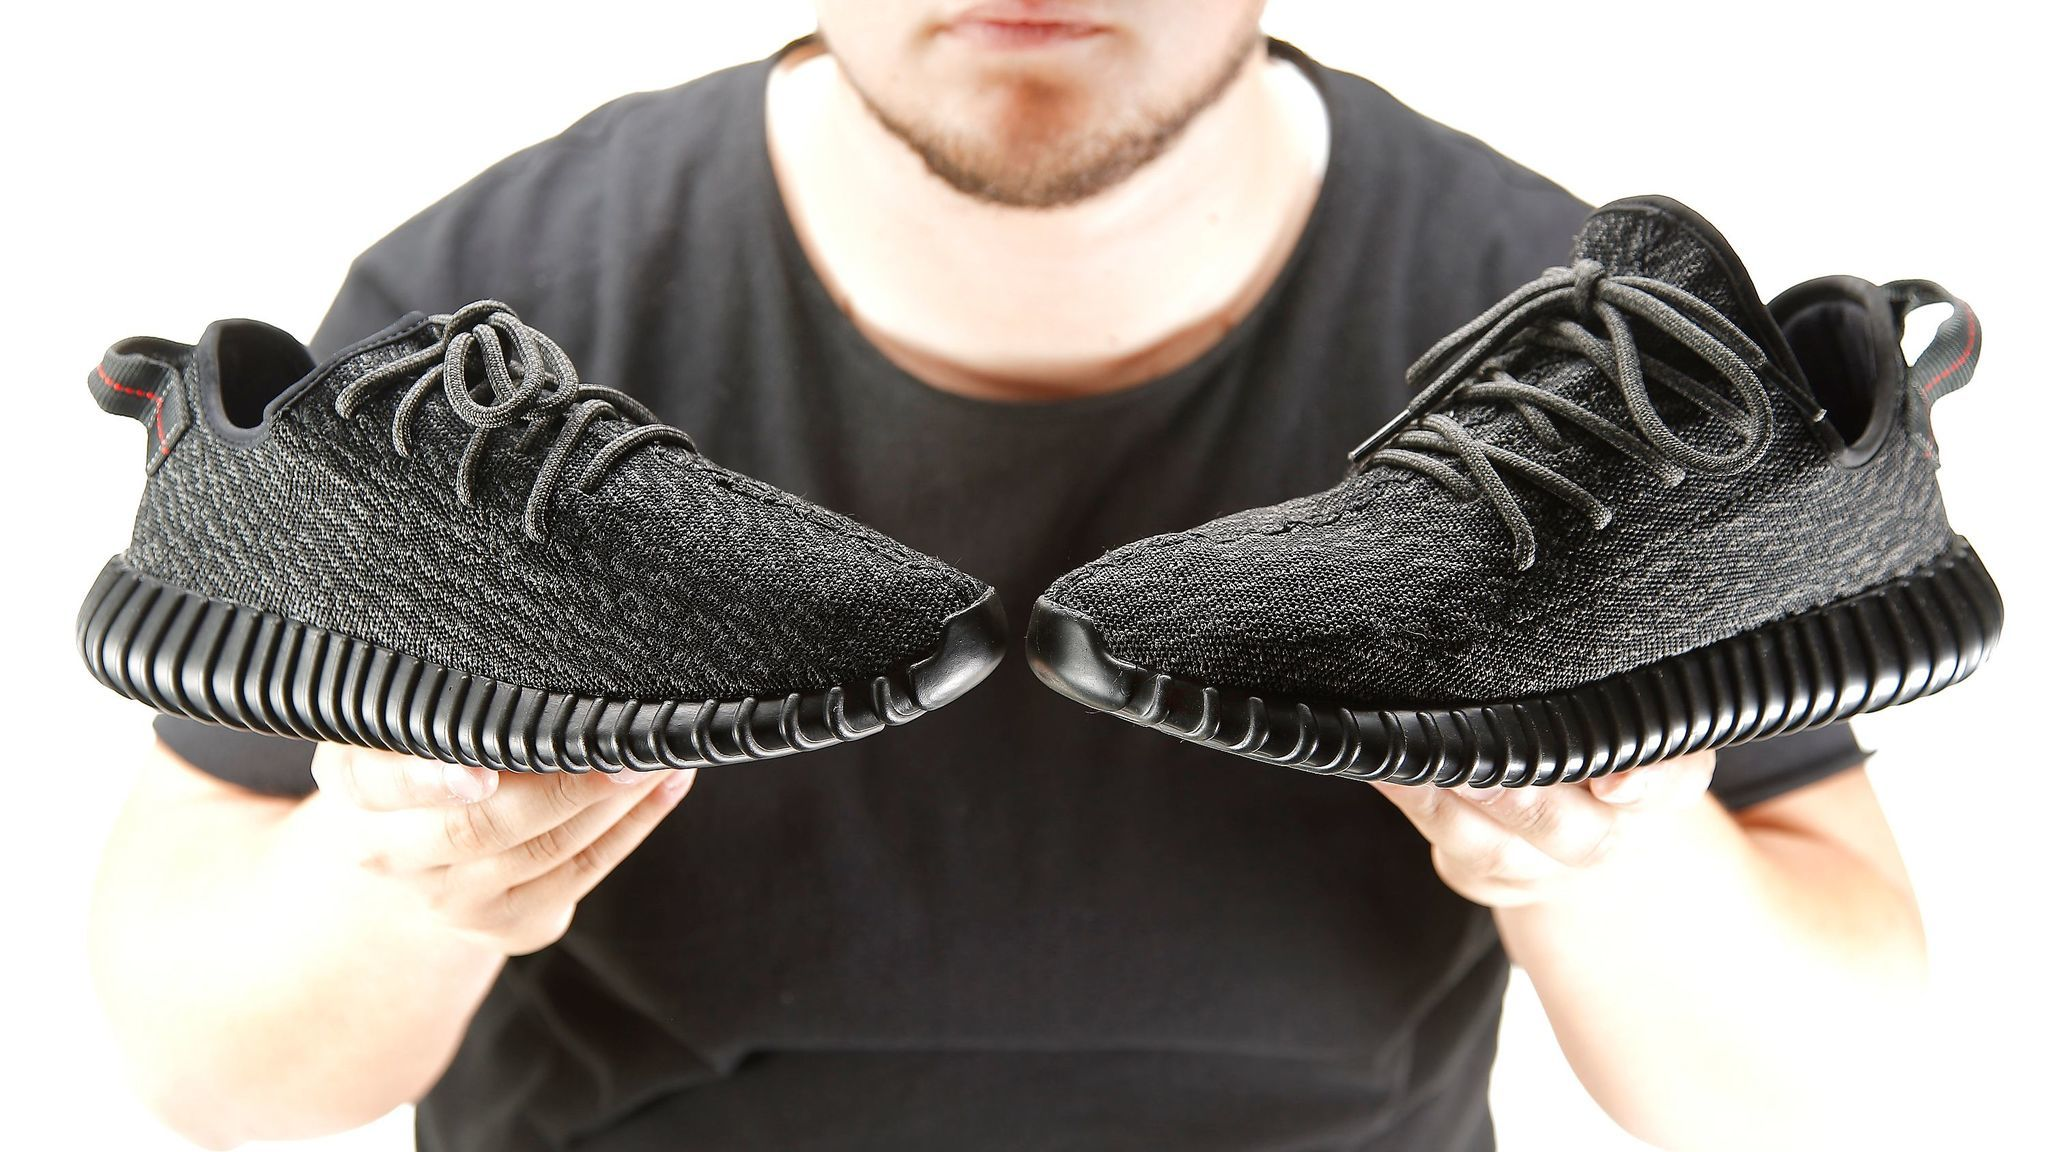 dbf598a58b58f Counterfeit Yeezys and the booming sneaker black market - Los ...